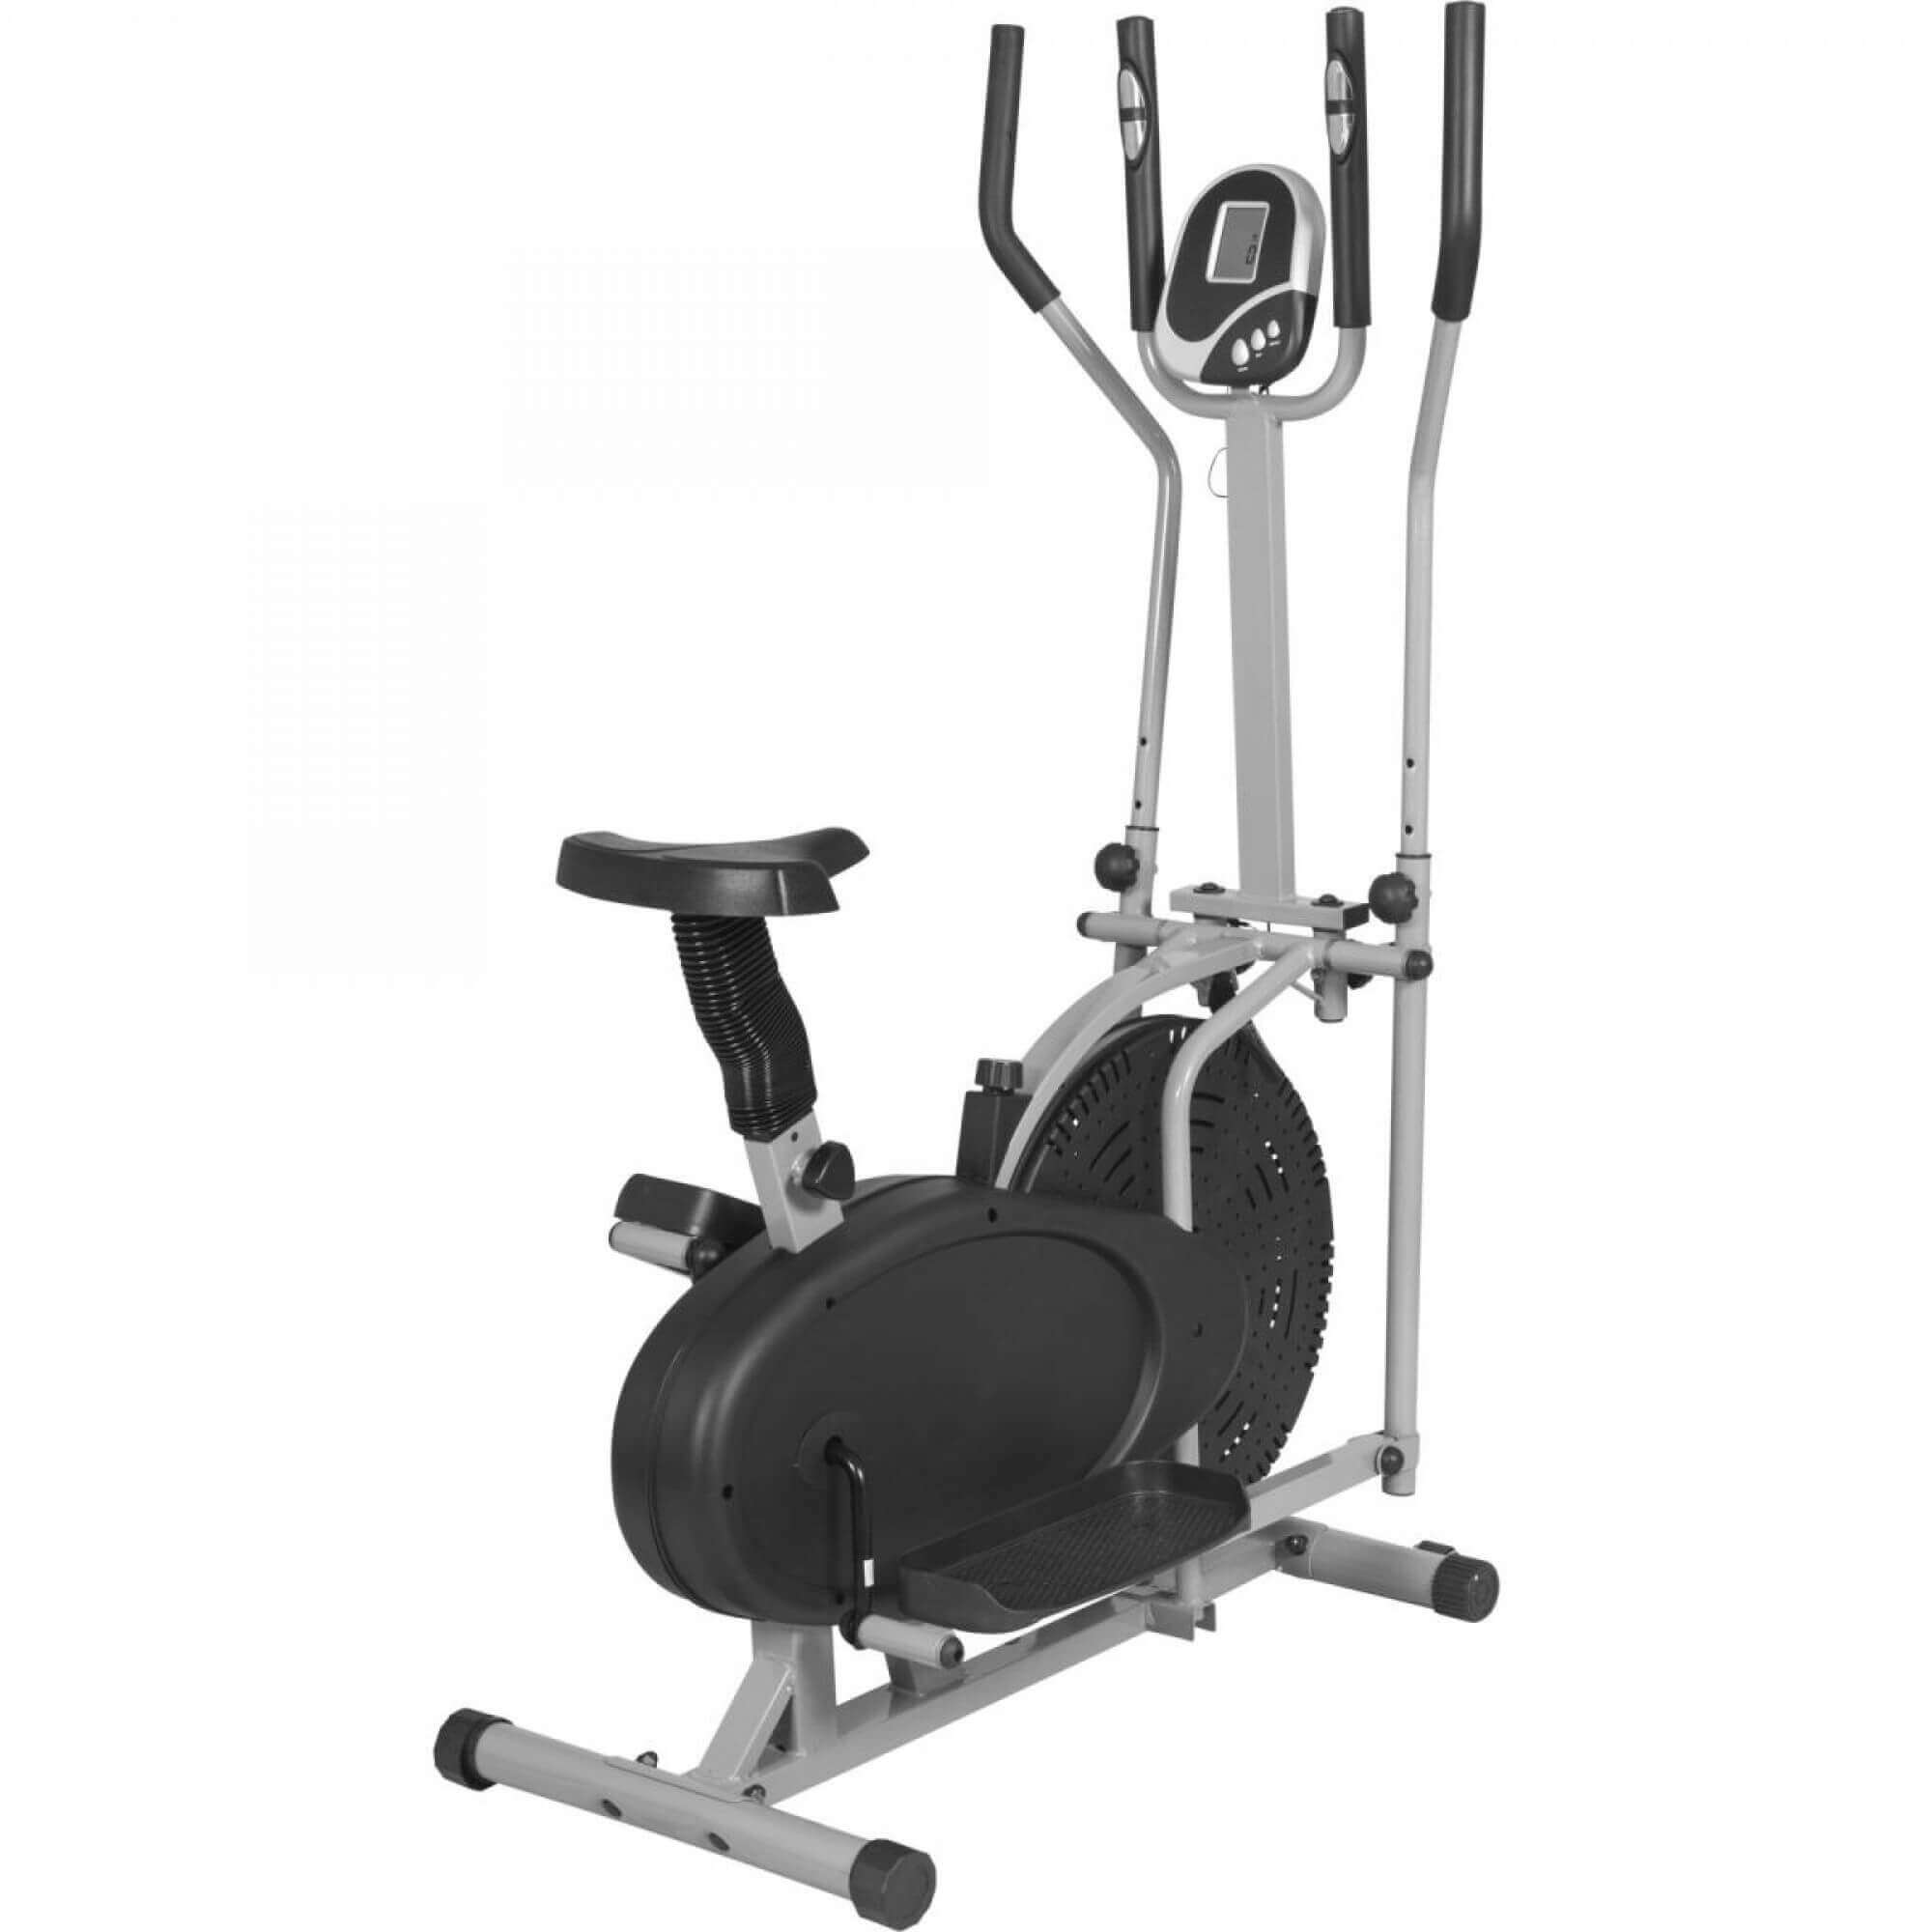 2-in-1 Elliptical Cross Trainer and